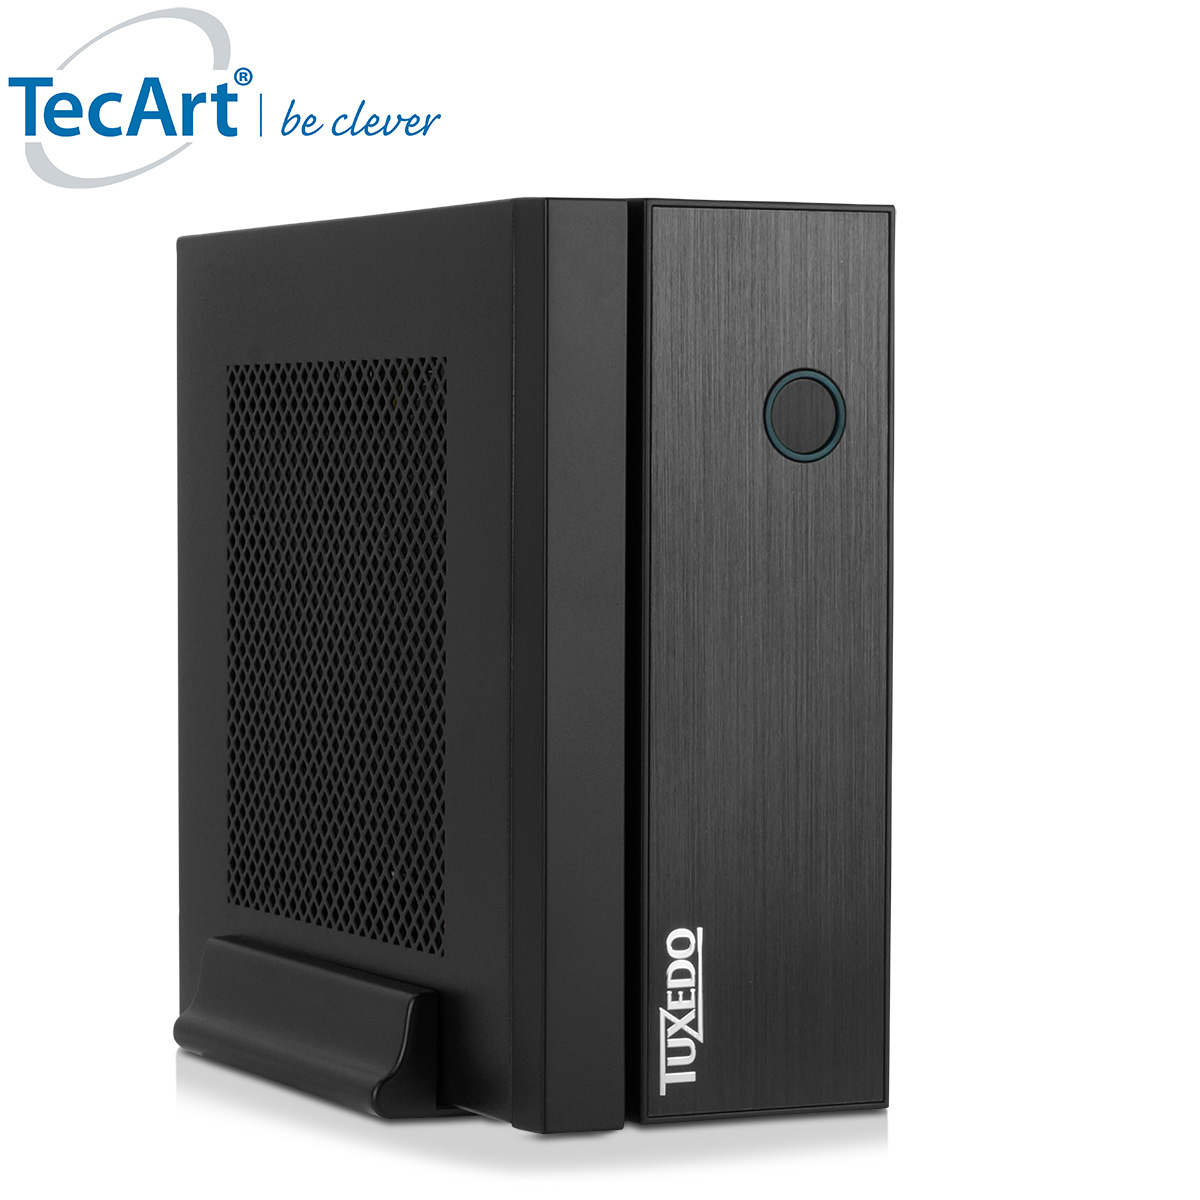 TecArt SOHO Server M